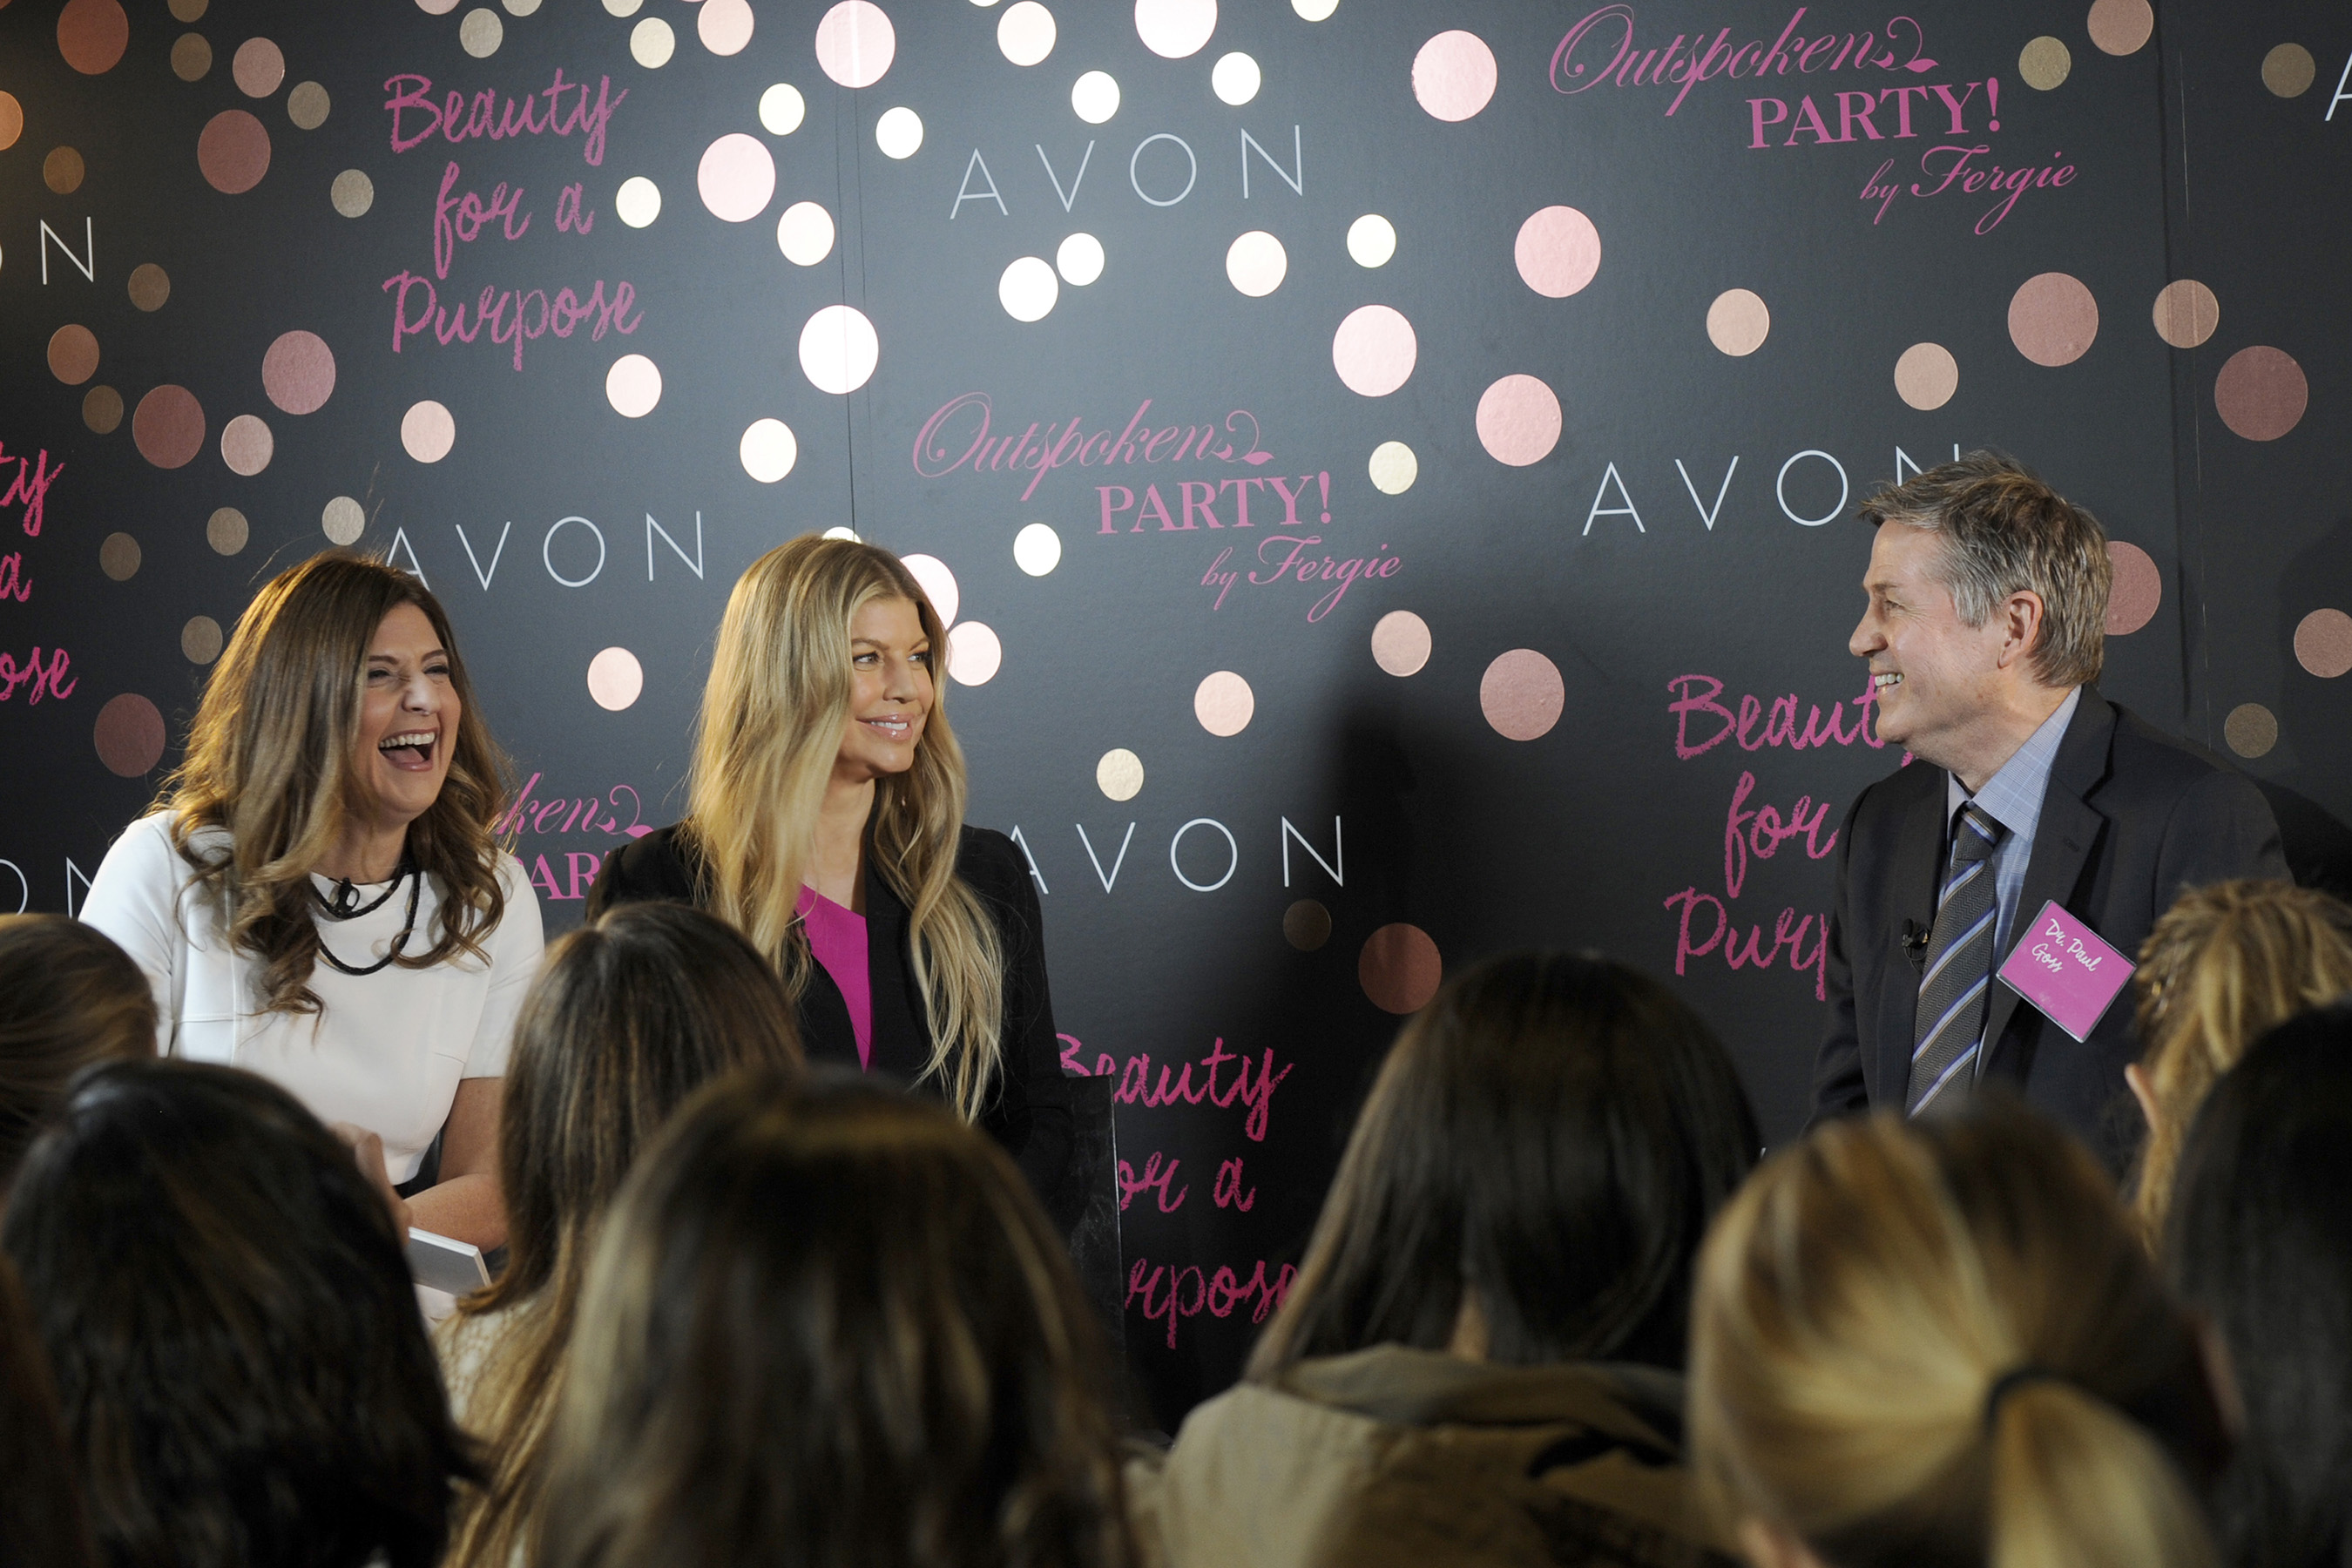 Global Brand Ambassador Fergie launches her new Avon fragrance, Outspoken Party! by Fergie, of which $5 from each sale benefits the Avon Foundation for Women and their fight to end breast cancer